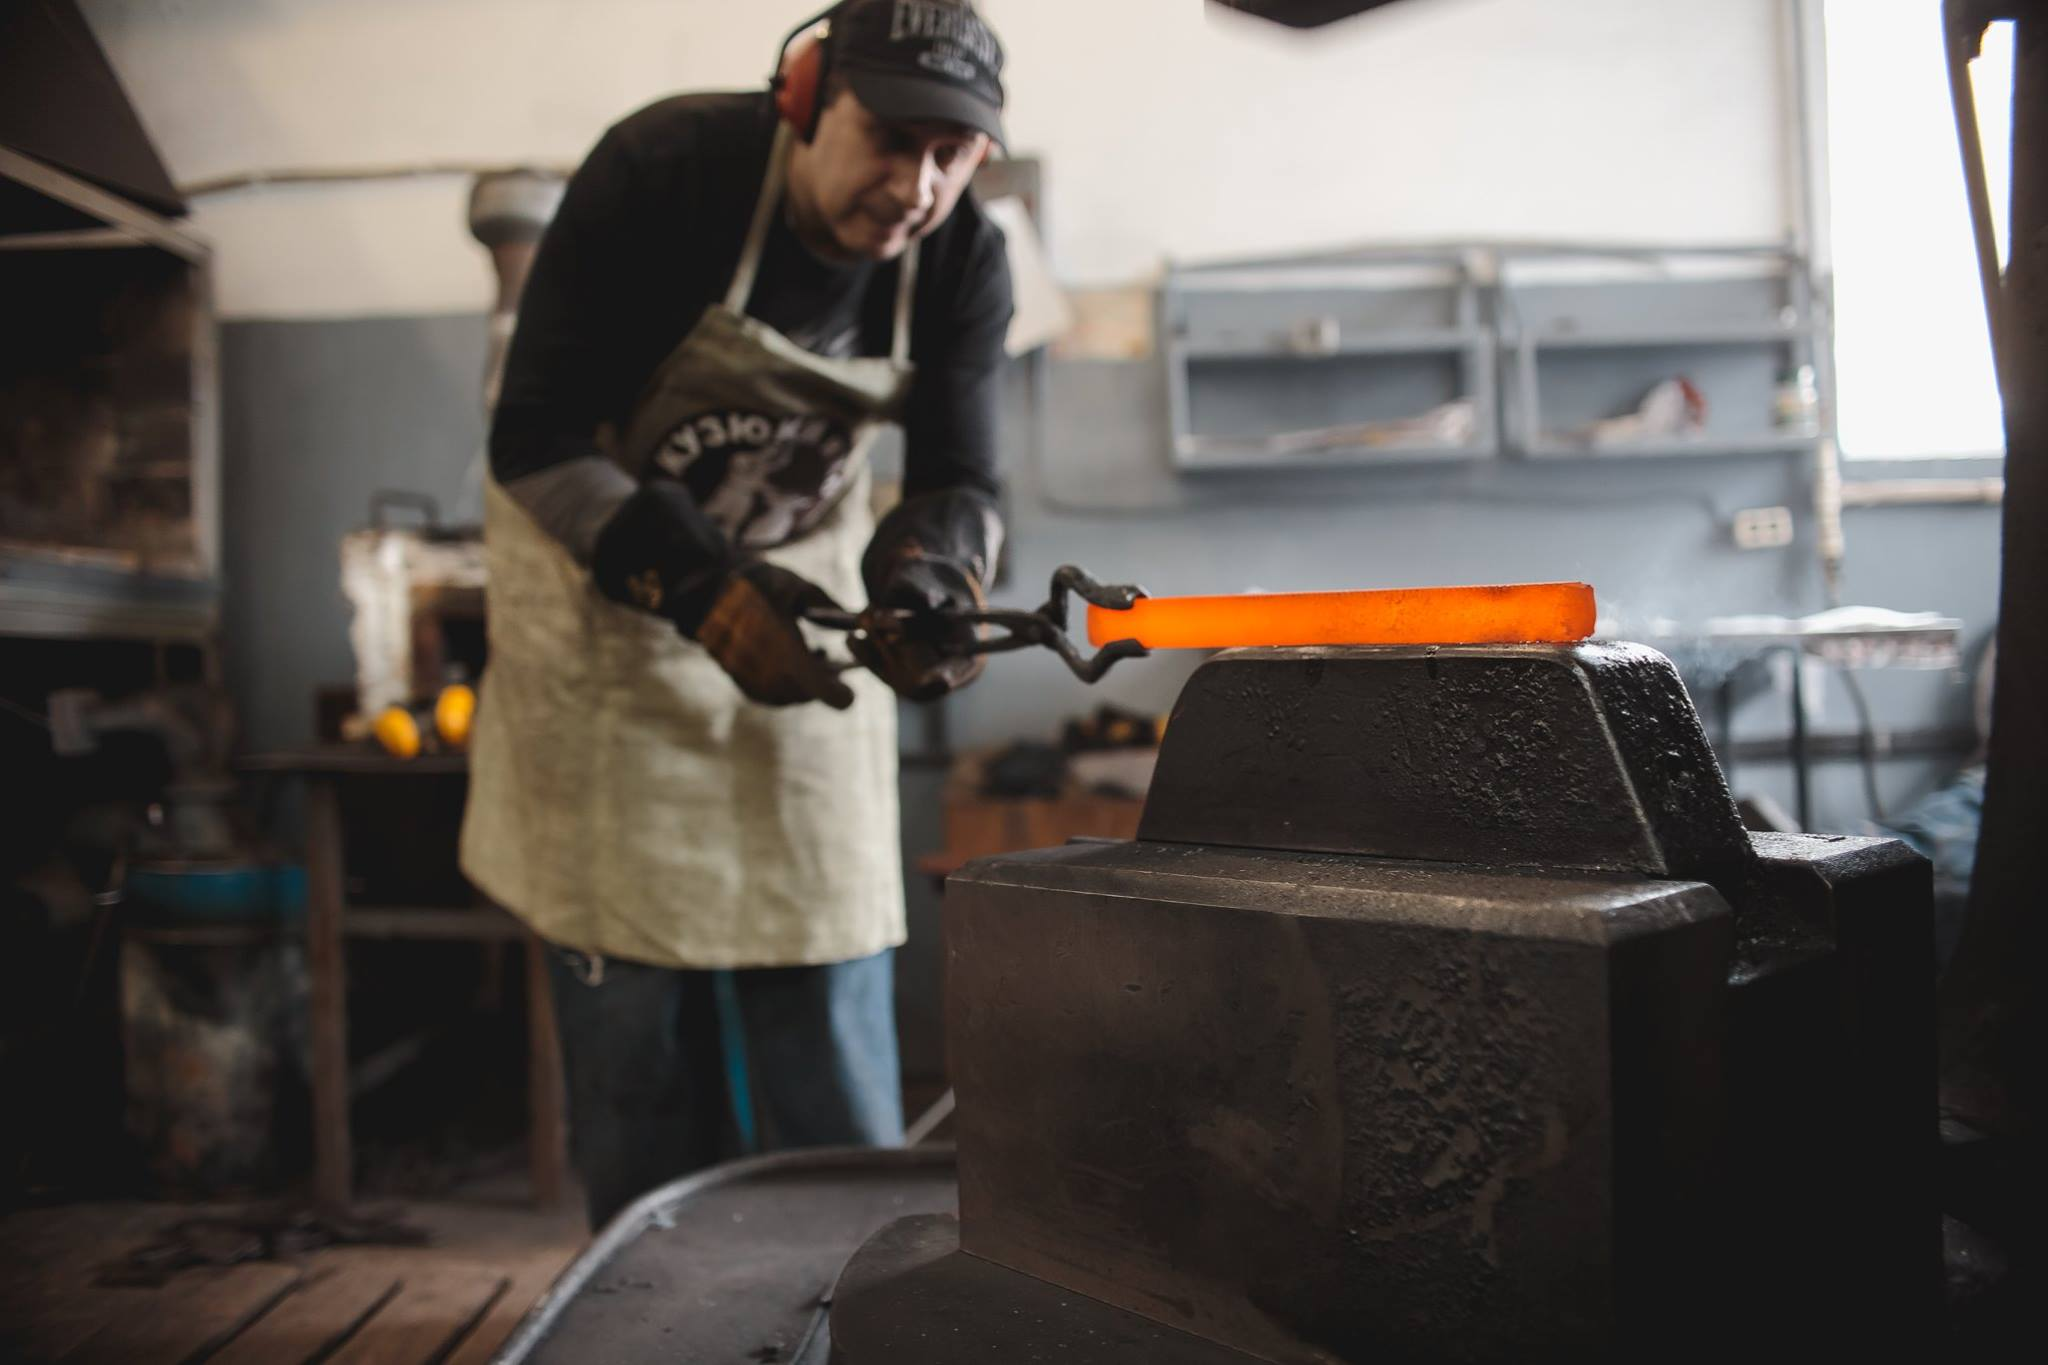 When forging, the blade steel heats to a ductile state (950-1100 degrees Celsius). Then it is shaped with a hammer closely resembling the final shape.